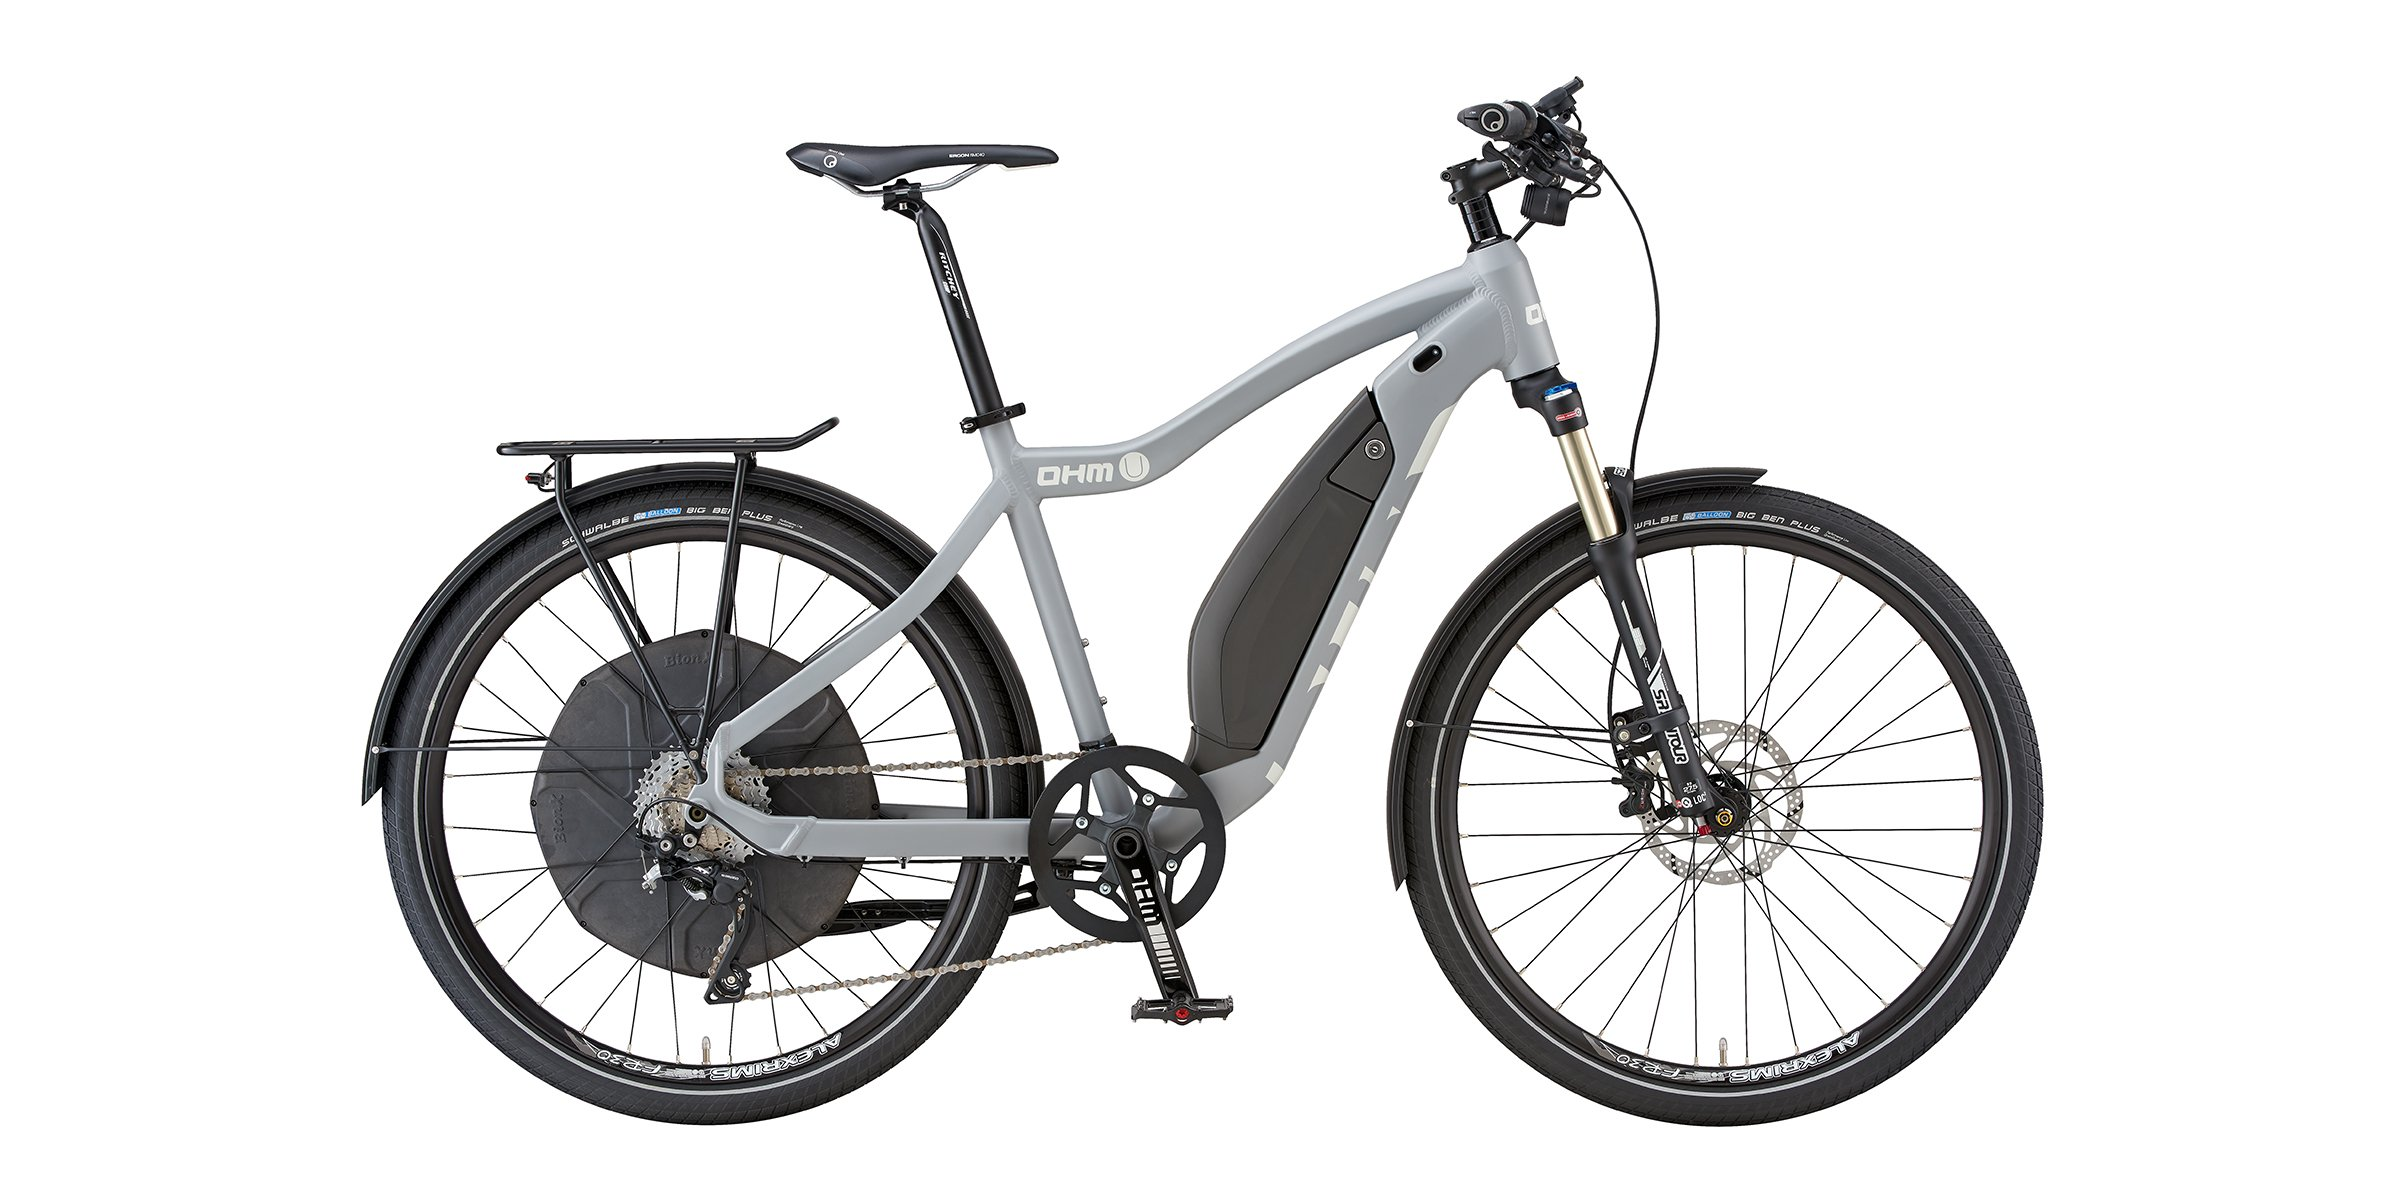 ohm urban e bike review